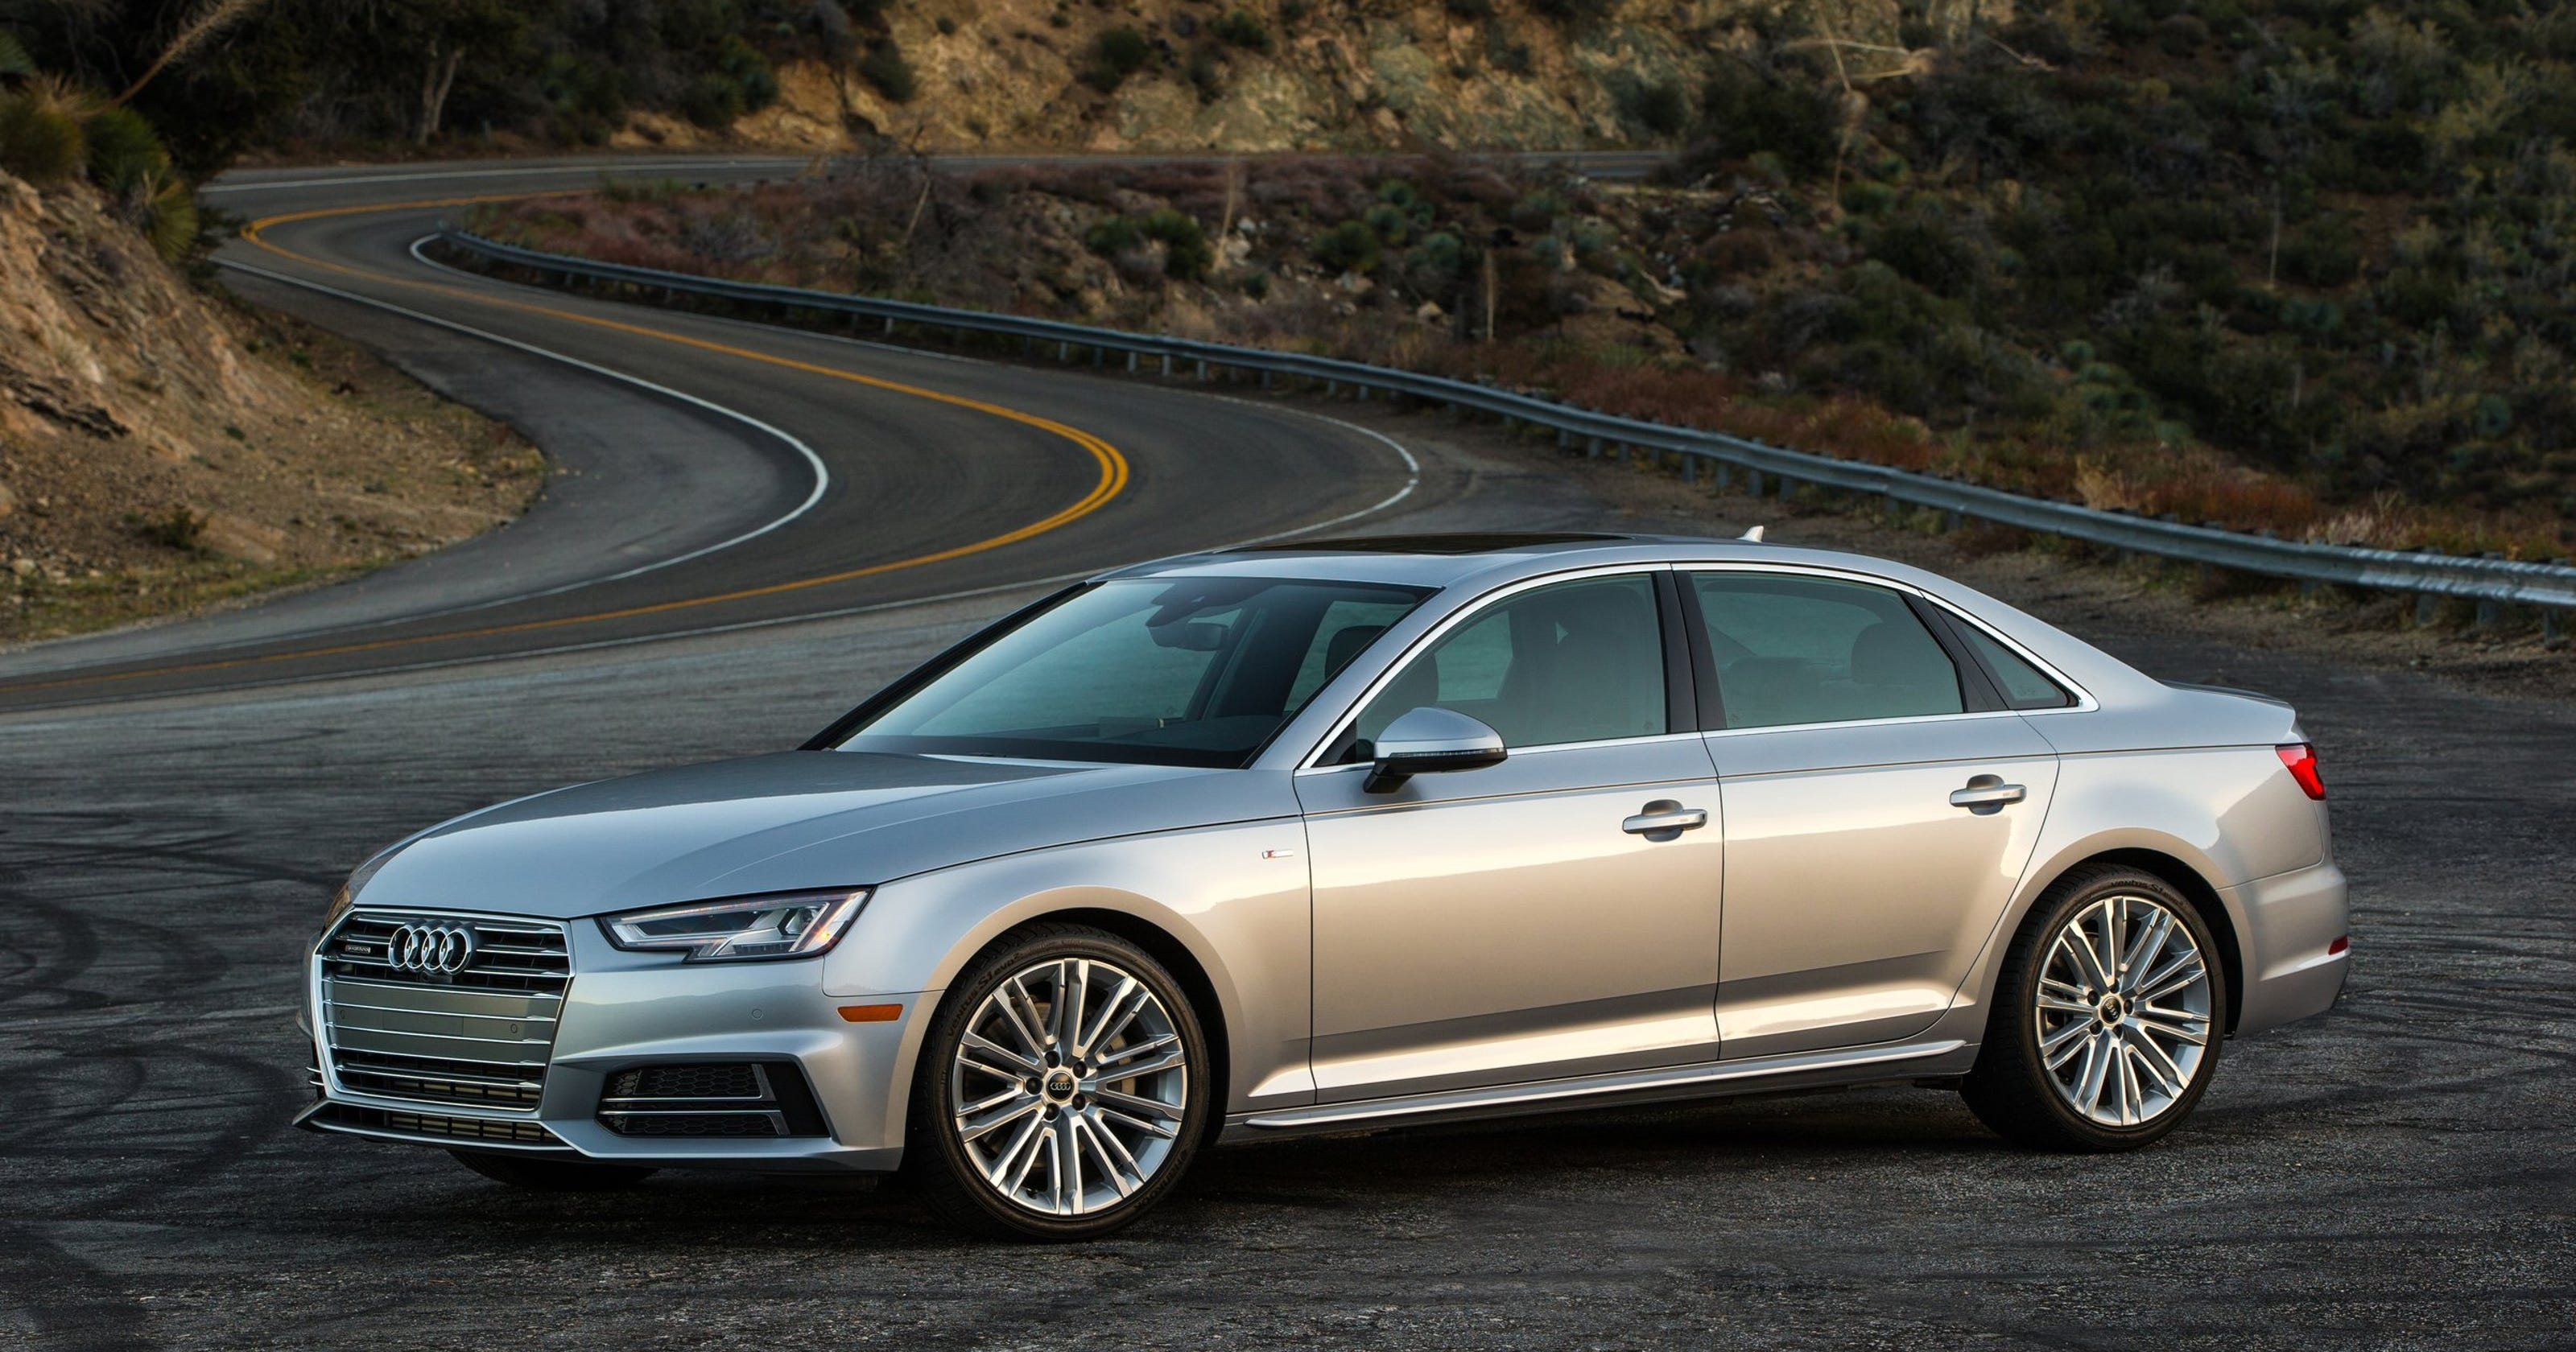 Review: Audi plays it safe with 2017 A4 sport sedan